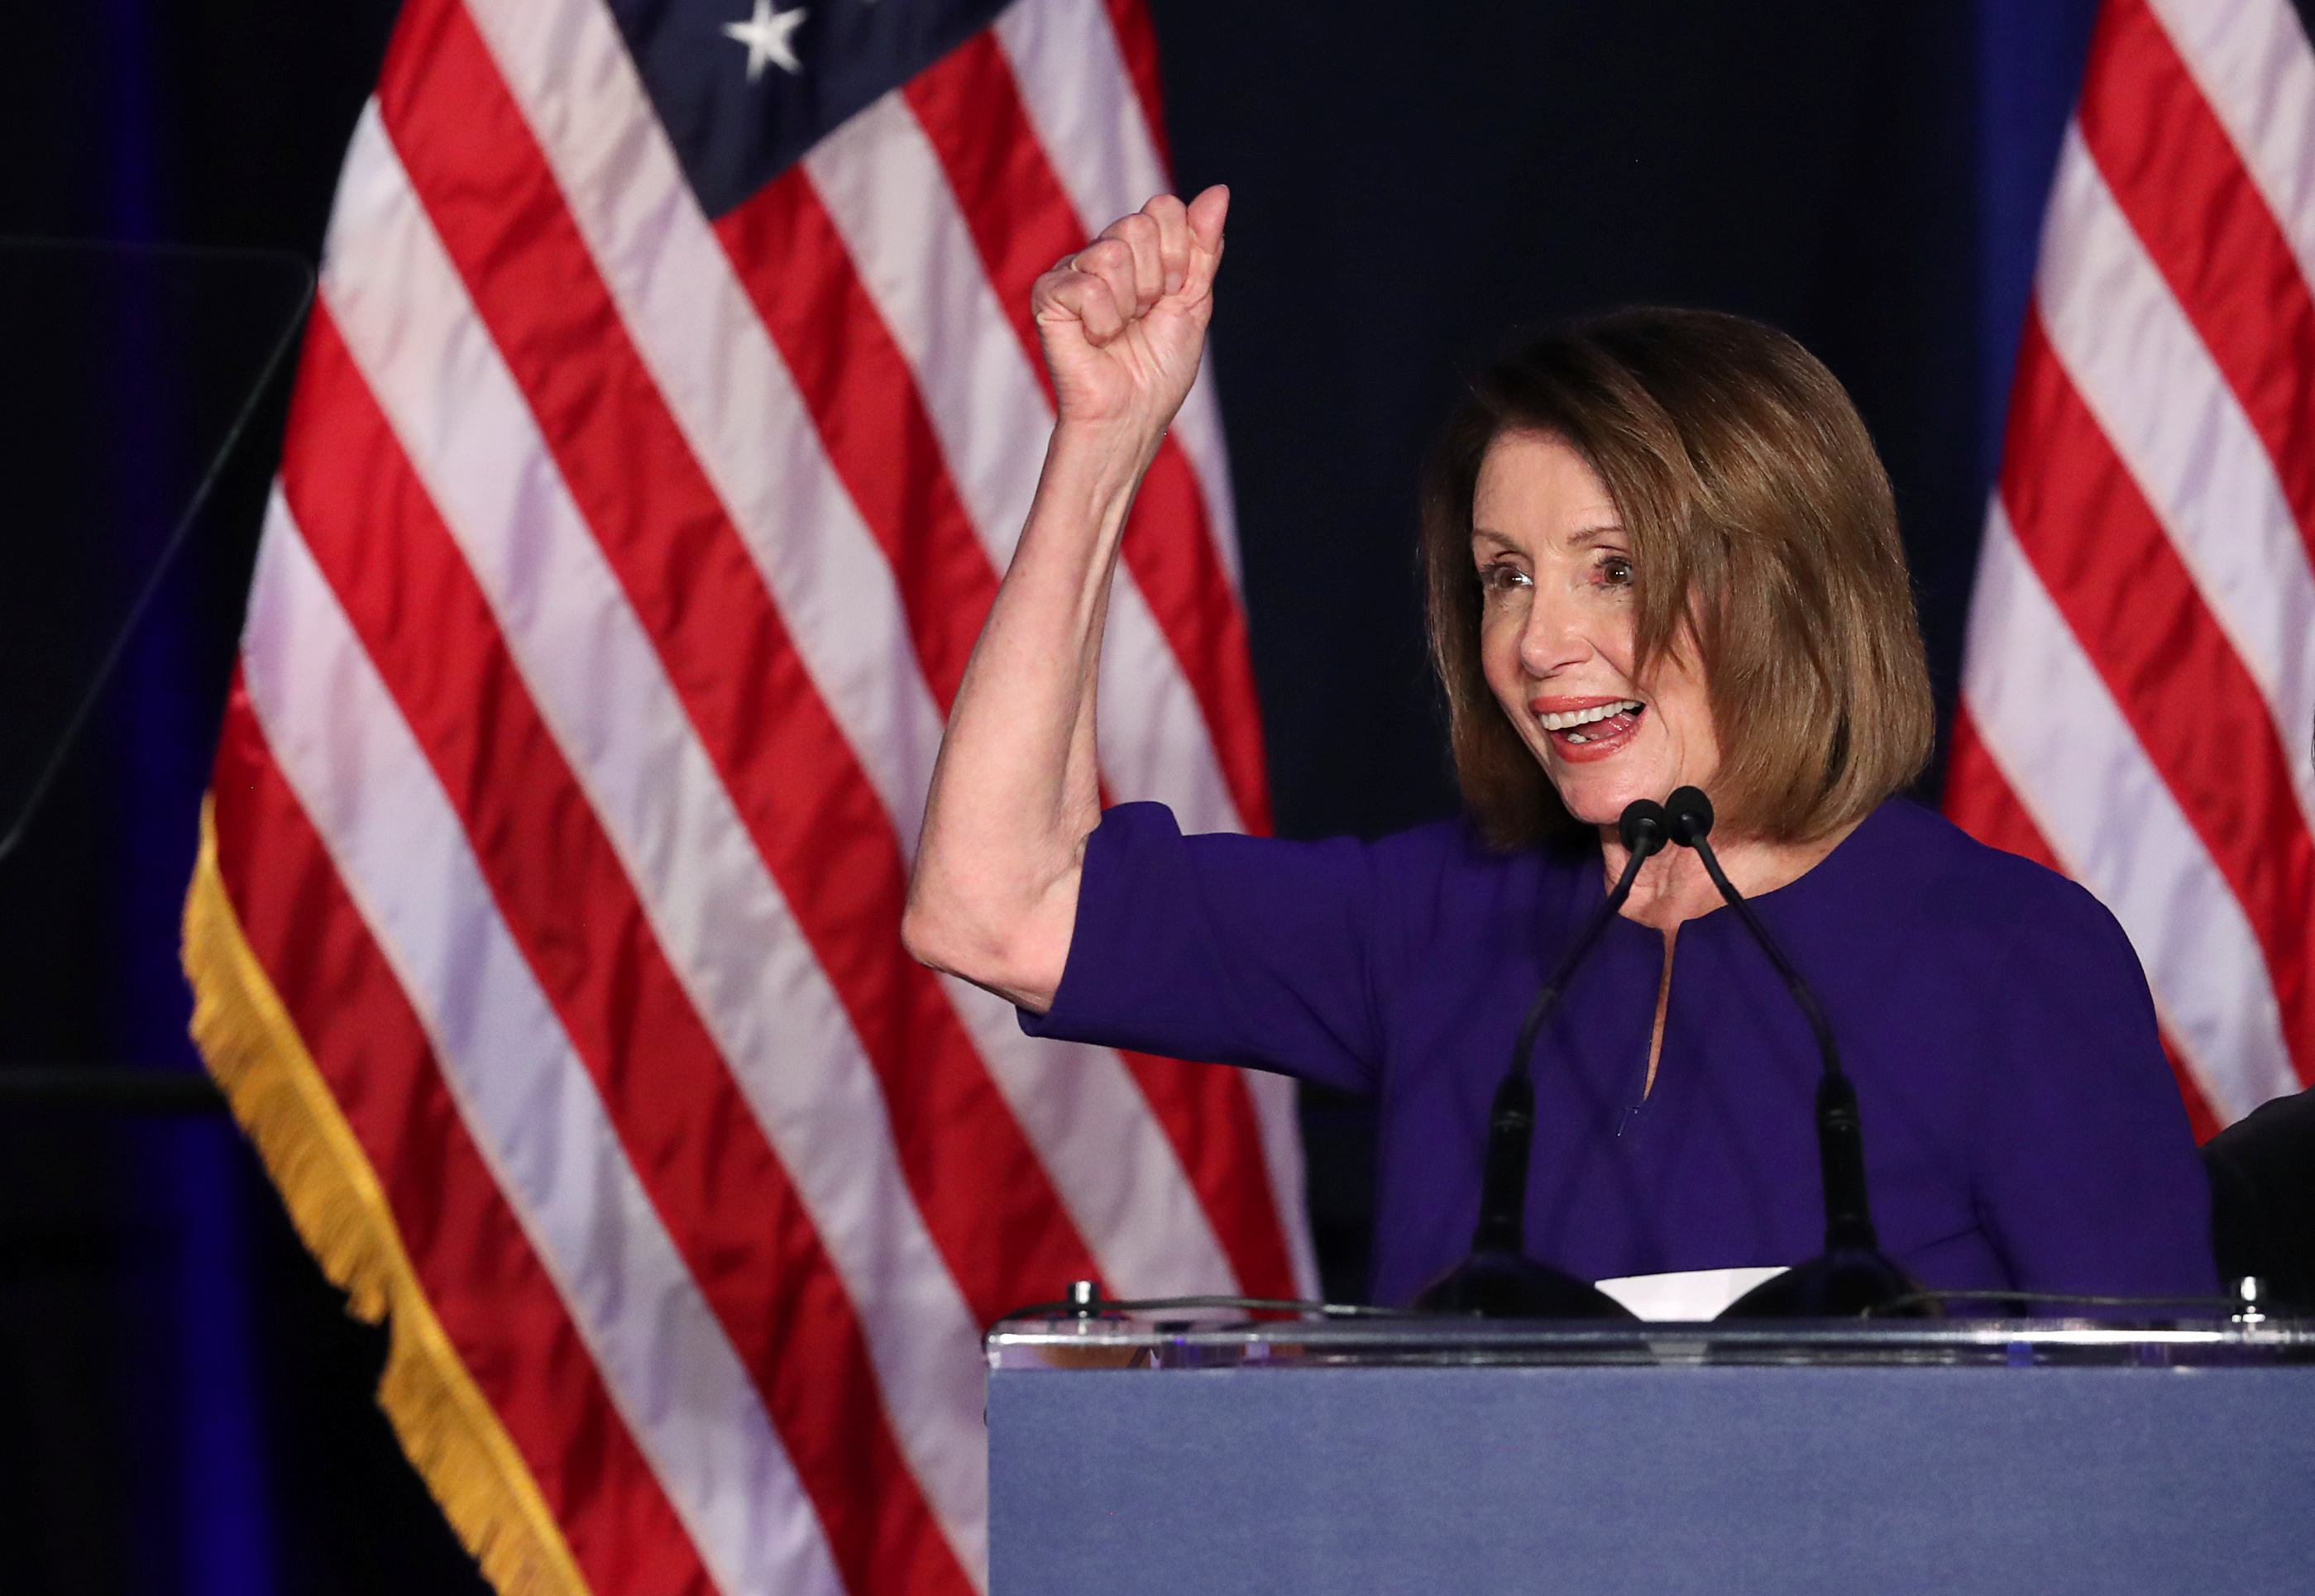 Nancy Pelosi, leader of the Democrats in the House of Representatives, celebrates her party's victory in Washington. Photo credit: Reuters